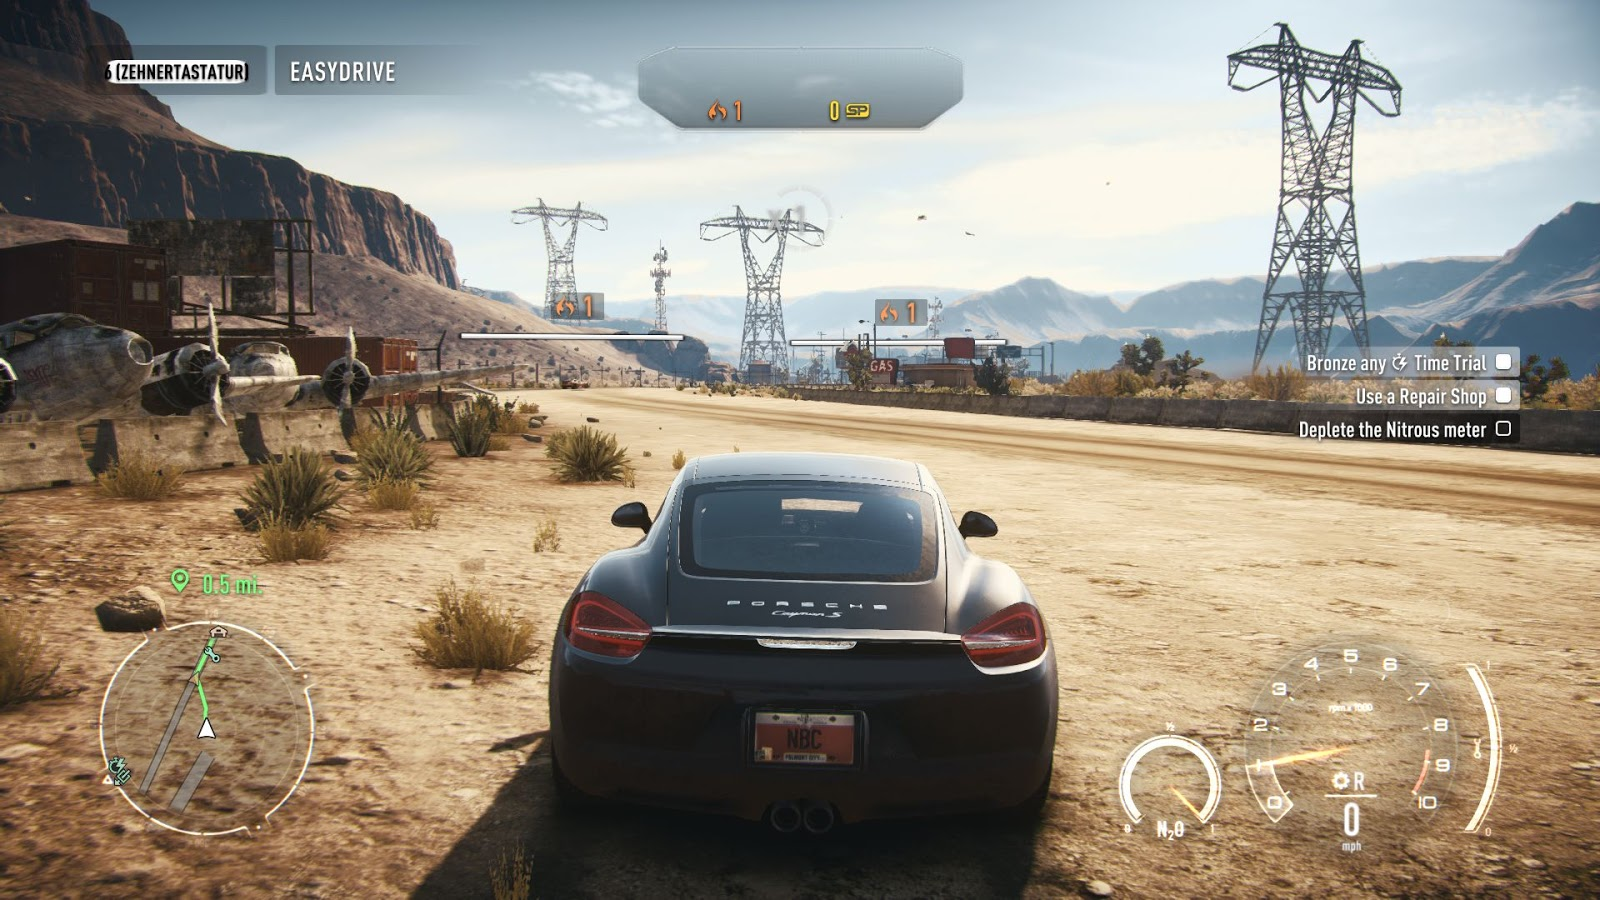 nfs rivals game download for windows 10